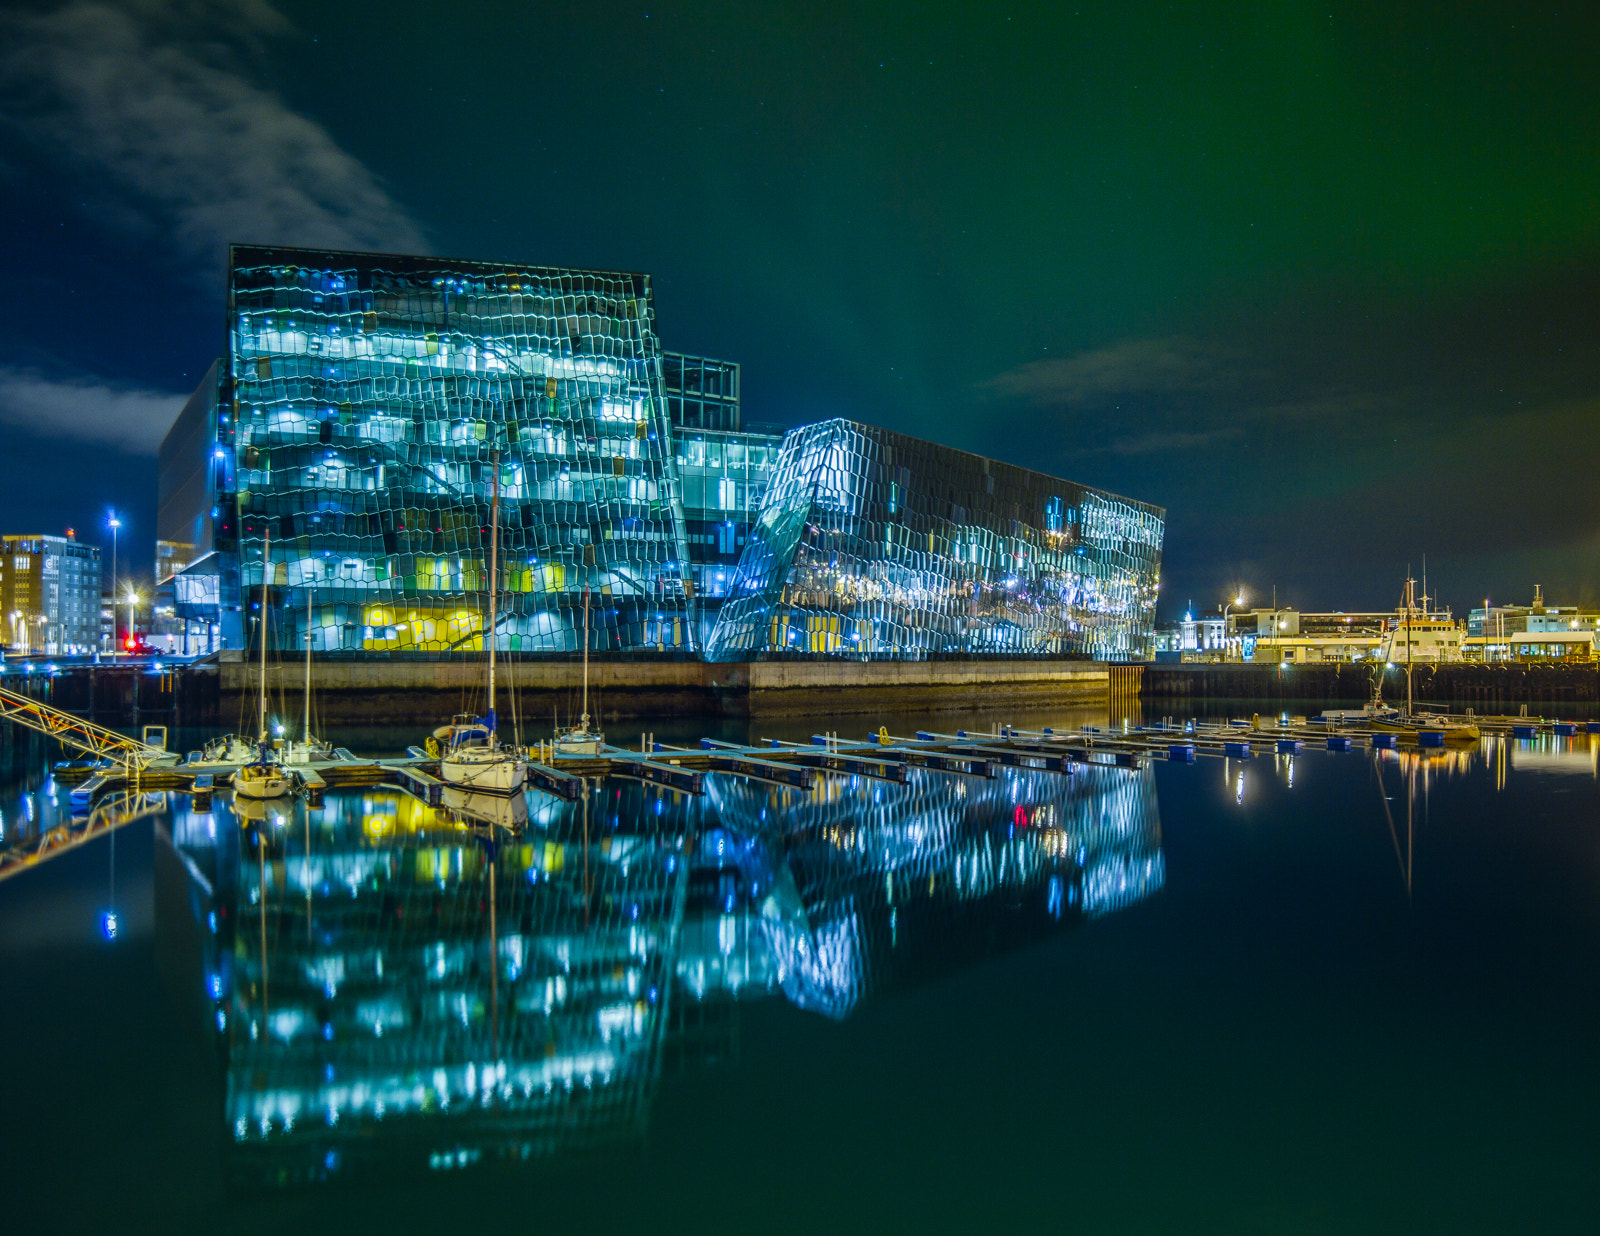 Photograph Harpa+Northern Lights by Agust Ingvarsson on 500px